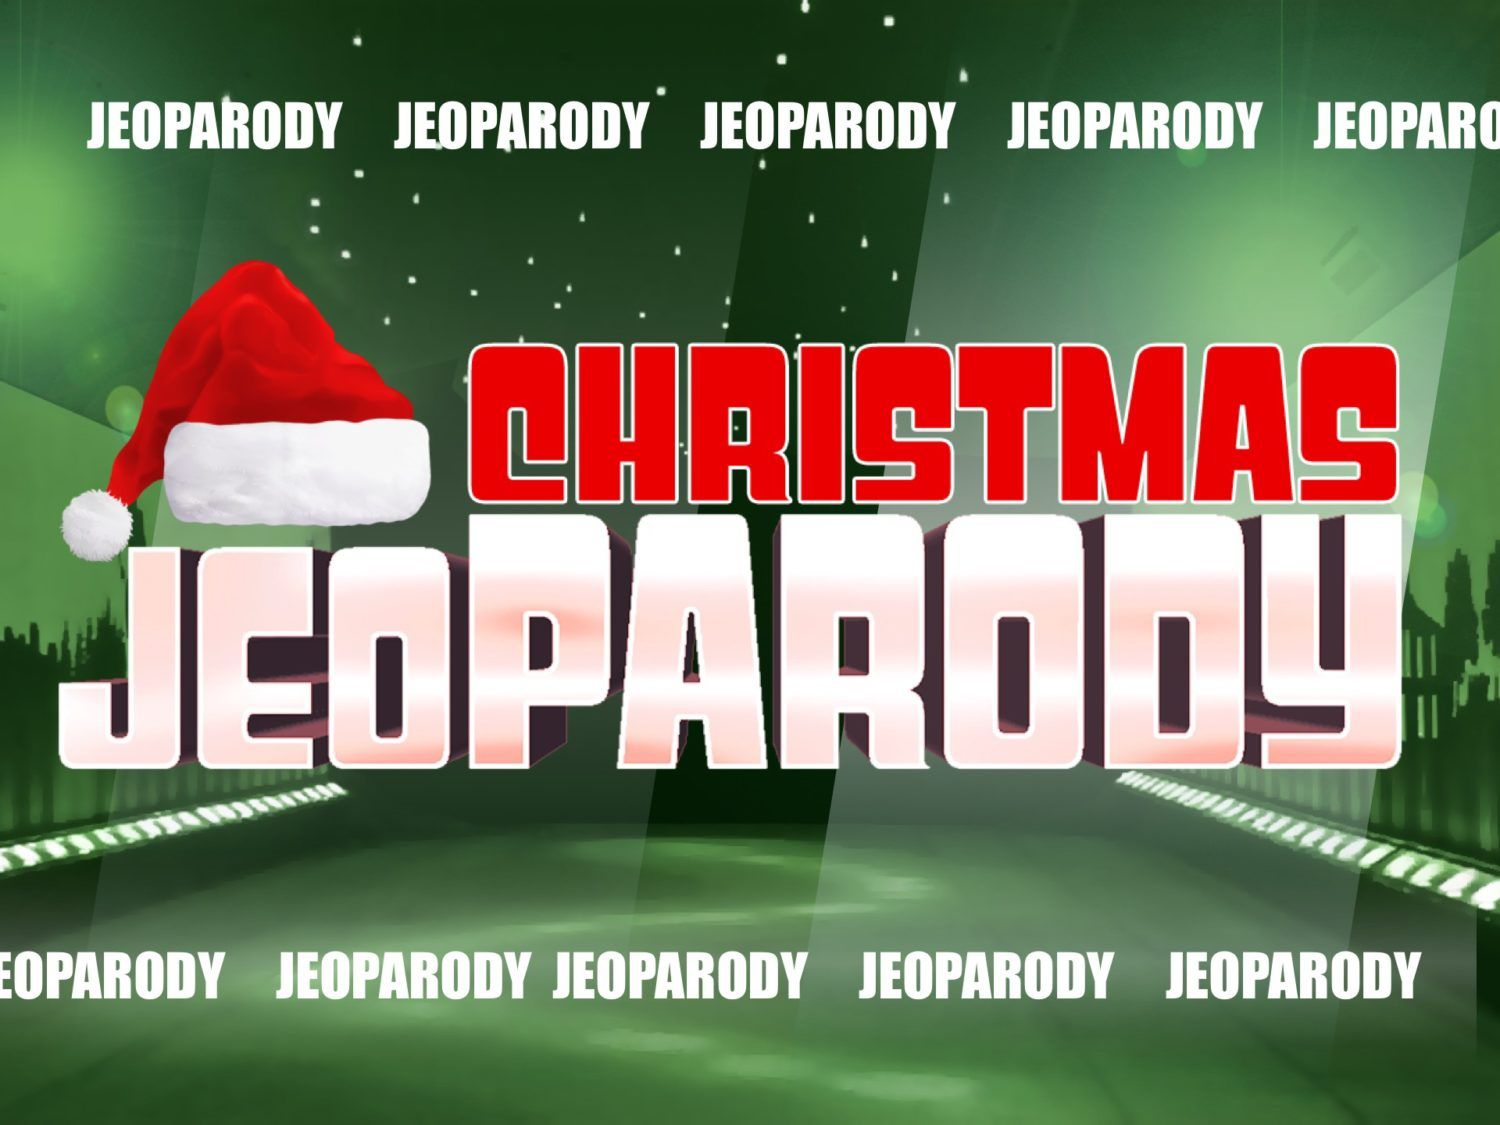 brand new christmas jeopardy powerpoint game. 30 questions and, Modern powerpoint